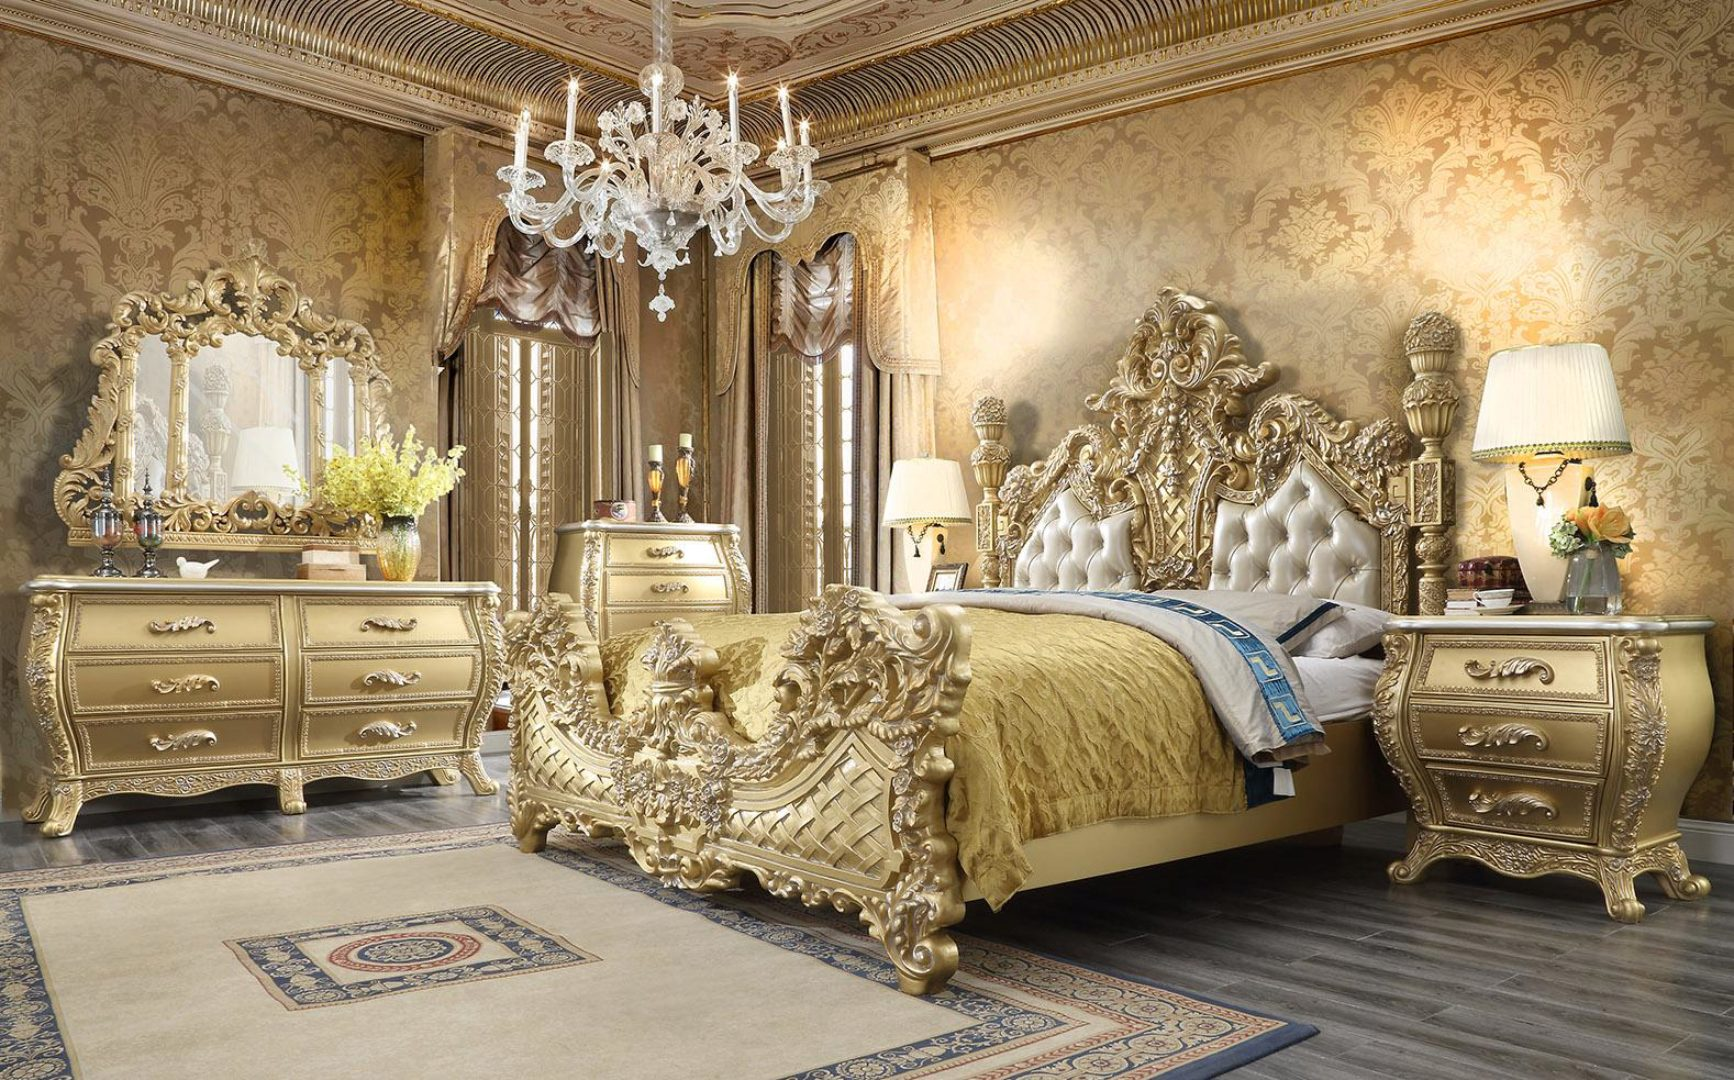 Antique Gold Leather Cal King Bedroom Set 3pcs Traditional Homey Design Hd 1801 Hd 1801 Ck Set 3